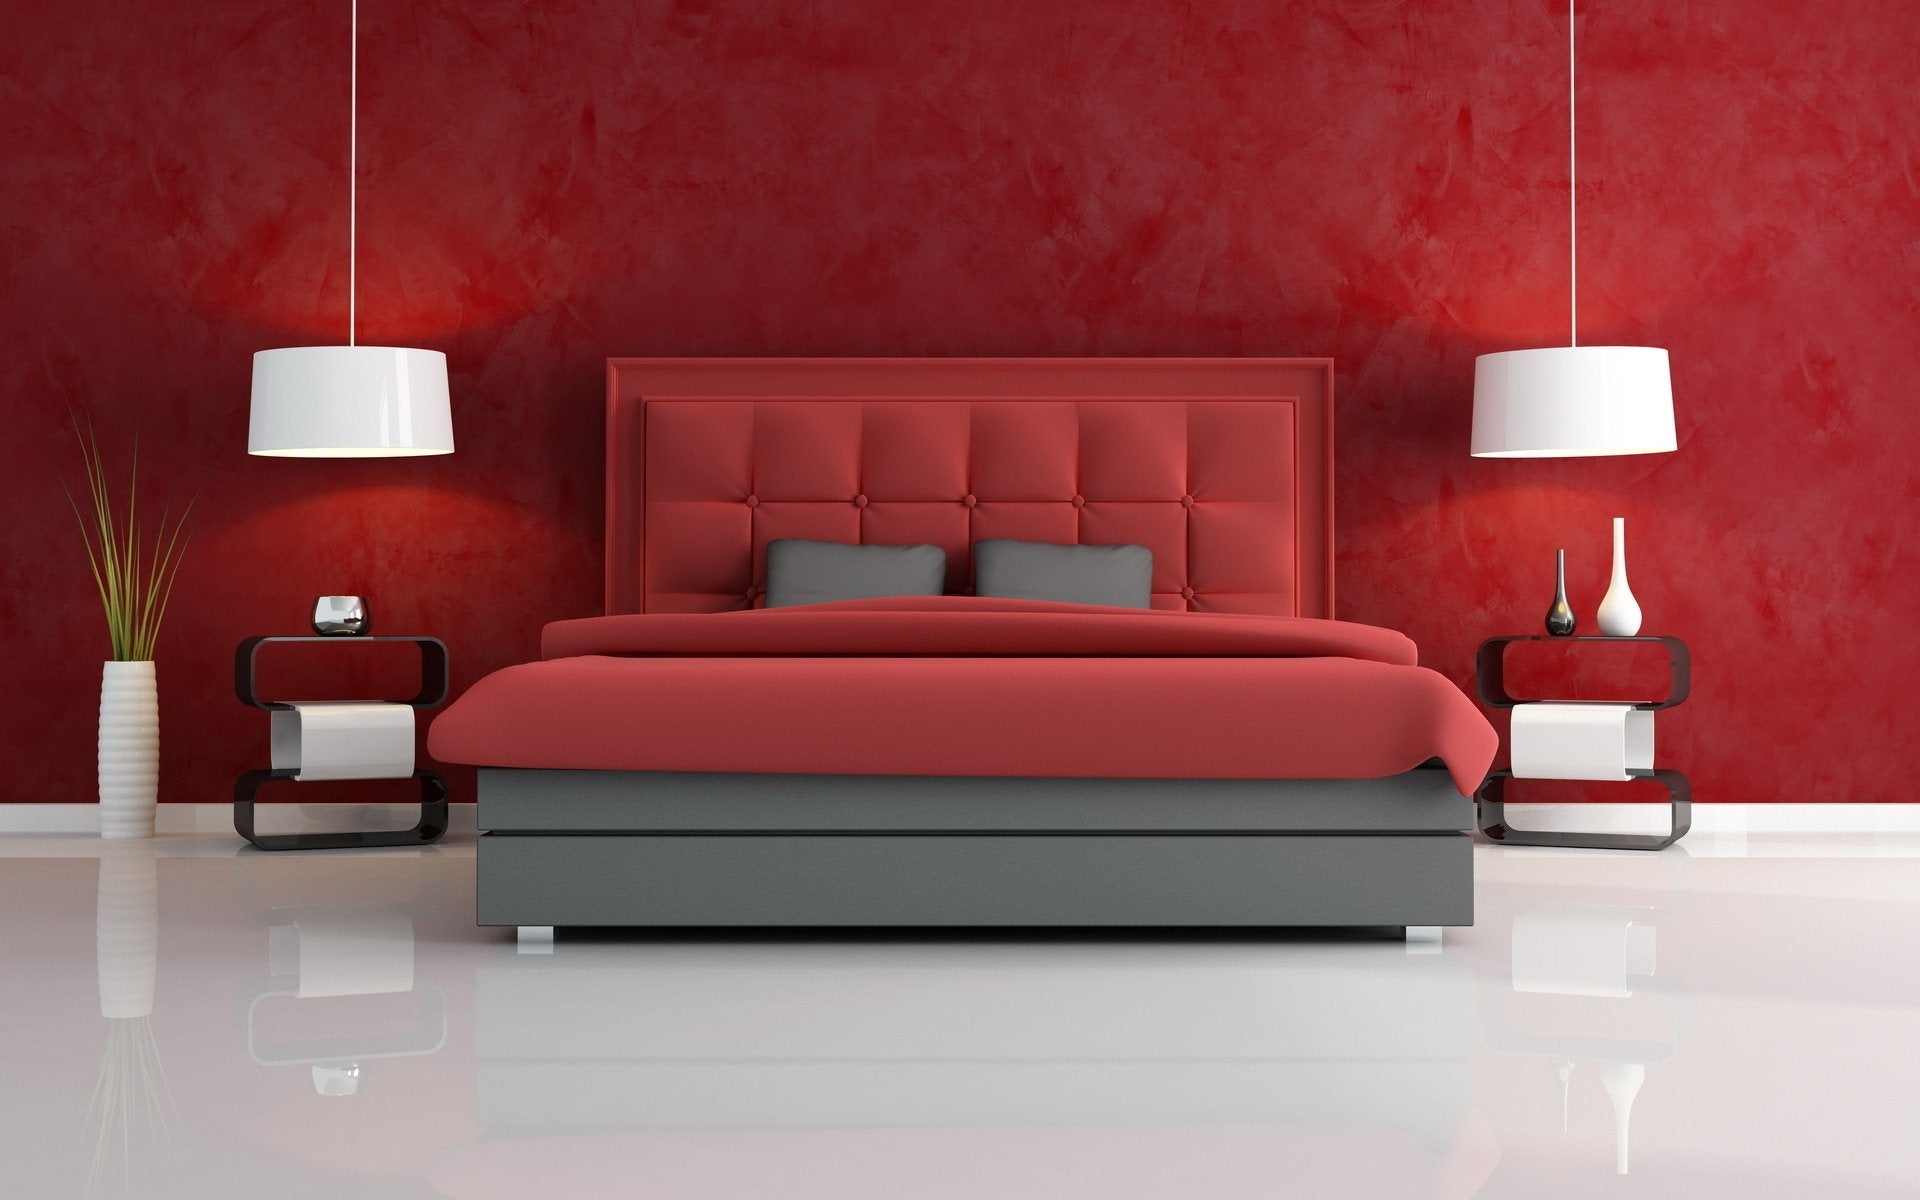 Bedroom color ideas grey and red - Black